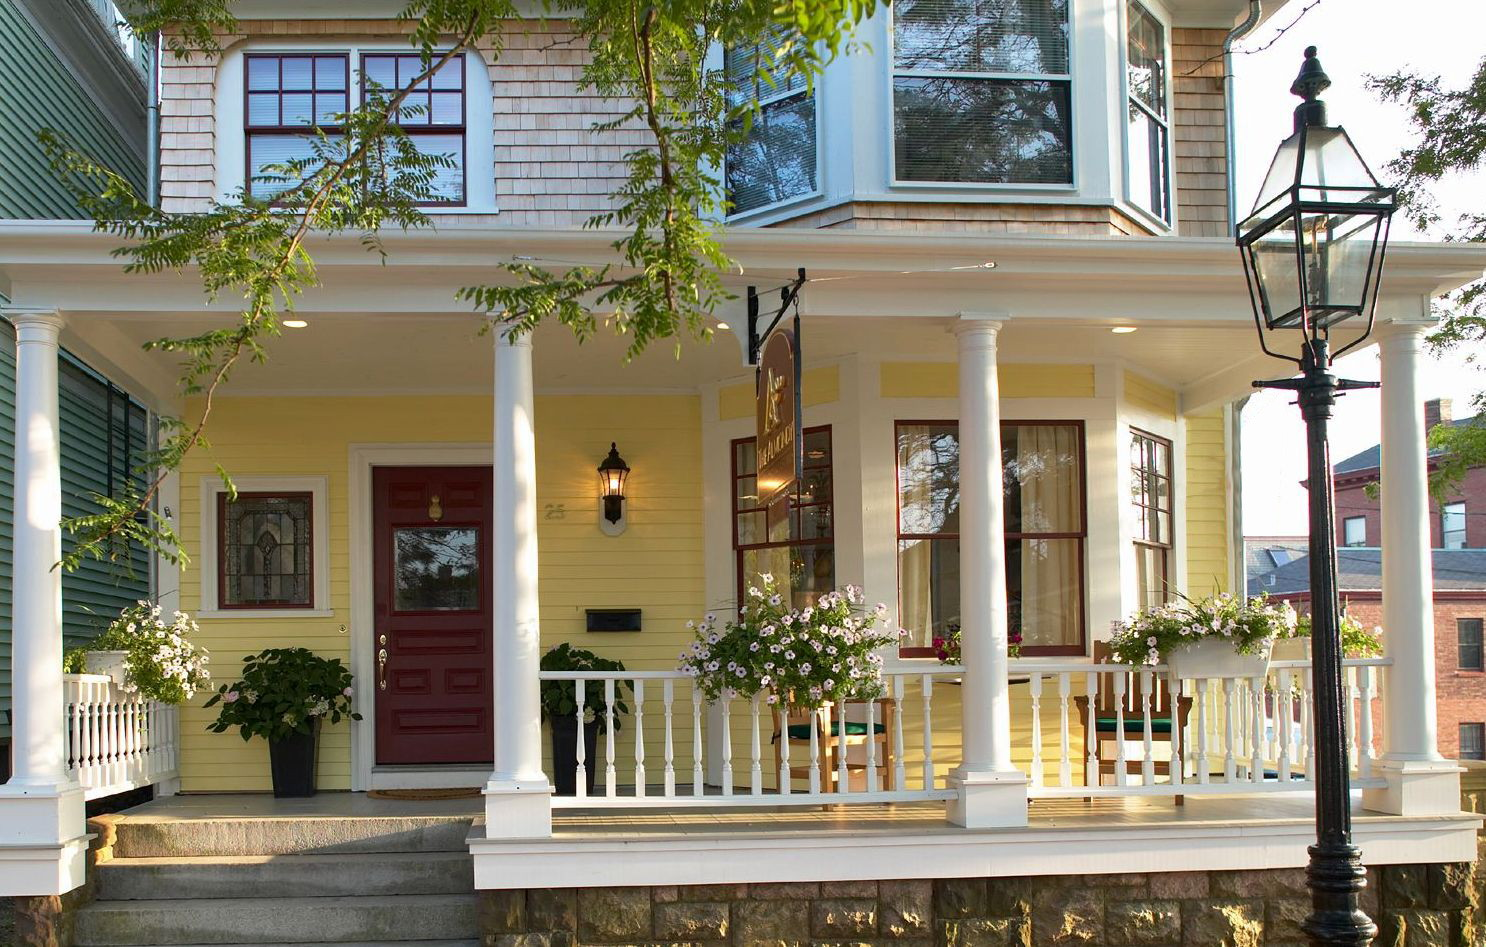 Multi-Family Home for Sale at The Almondy Inn Bed and Breakfast 25 Pelham Street Newport, Rhode Island 02840 United States